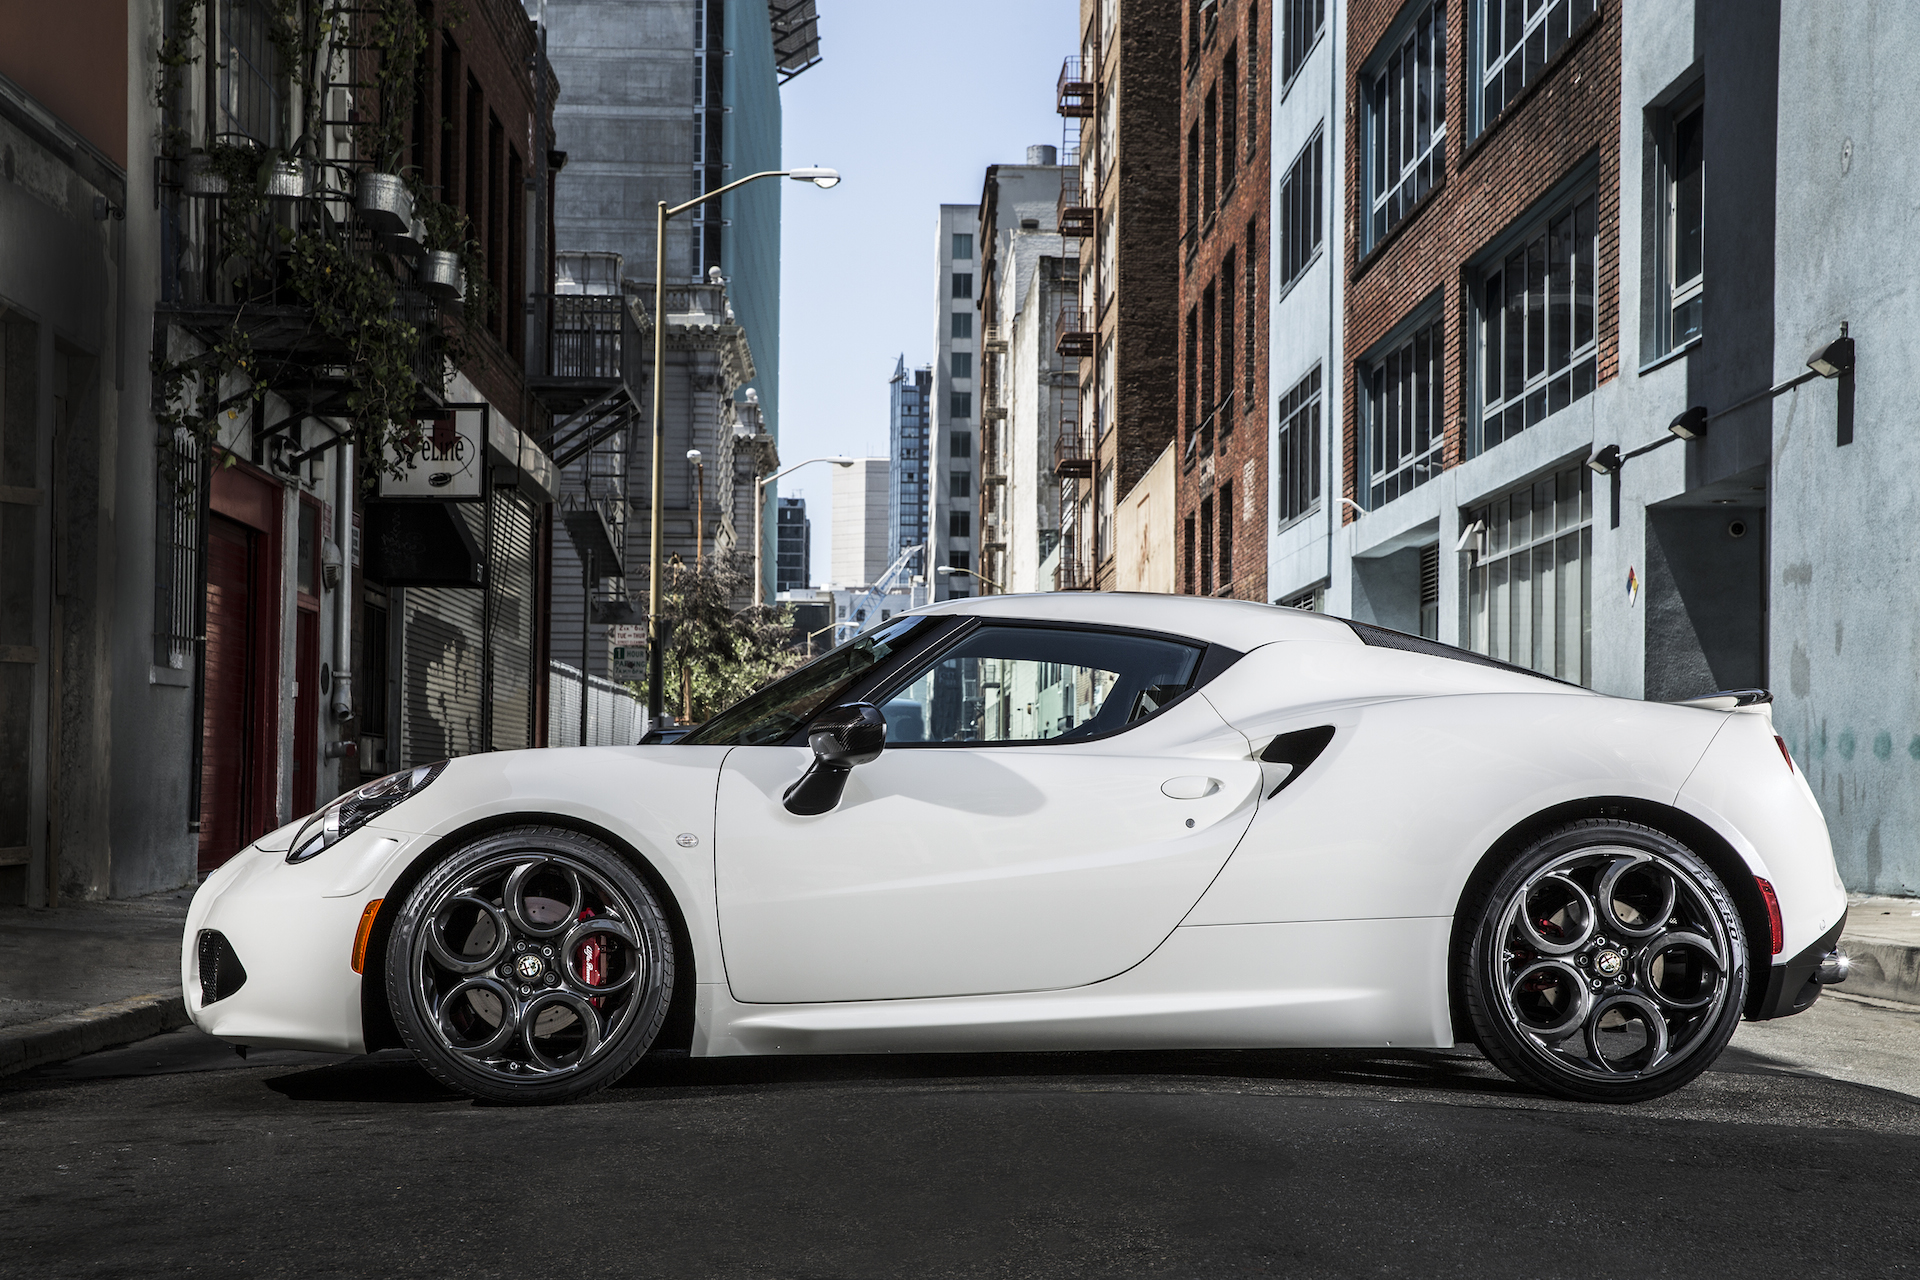 2015 Alfa Romeo 4C: Best Car To Buy 2015 Nominee